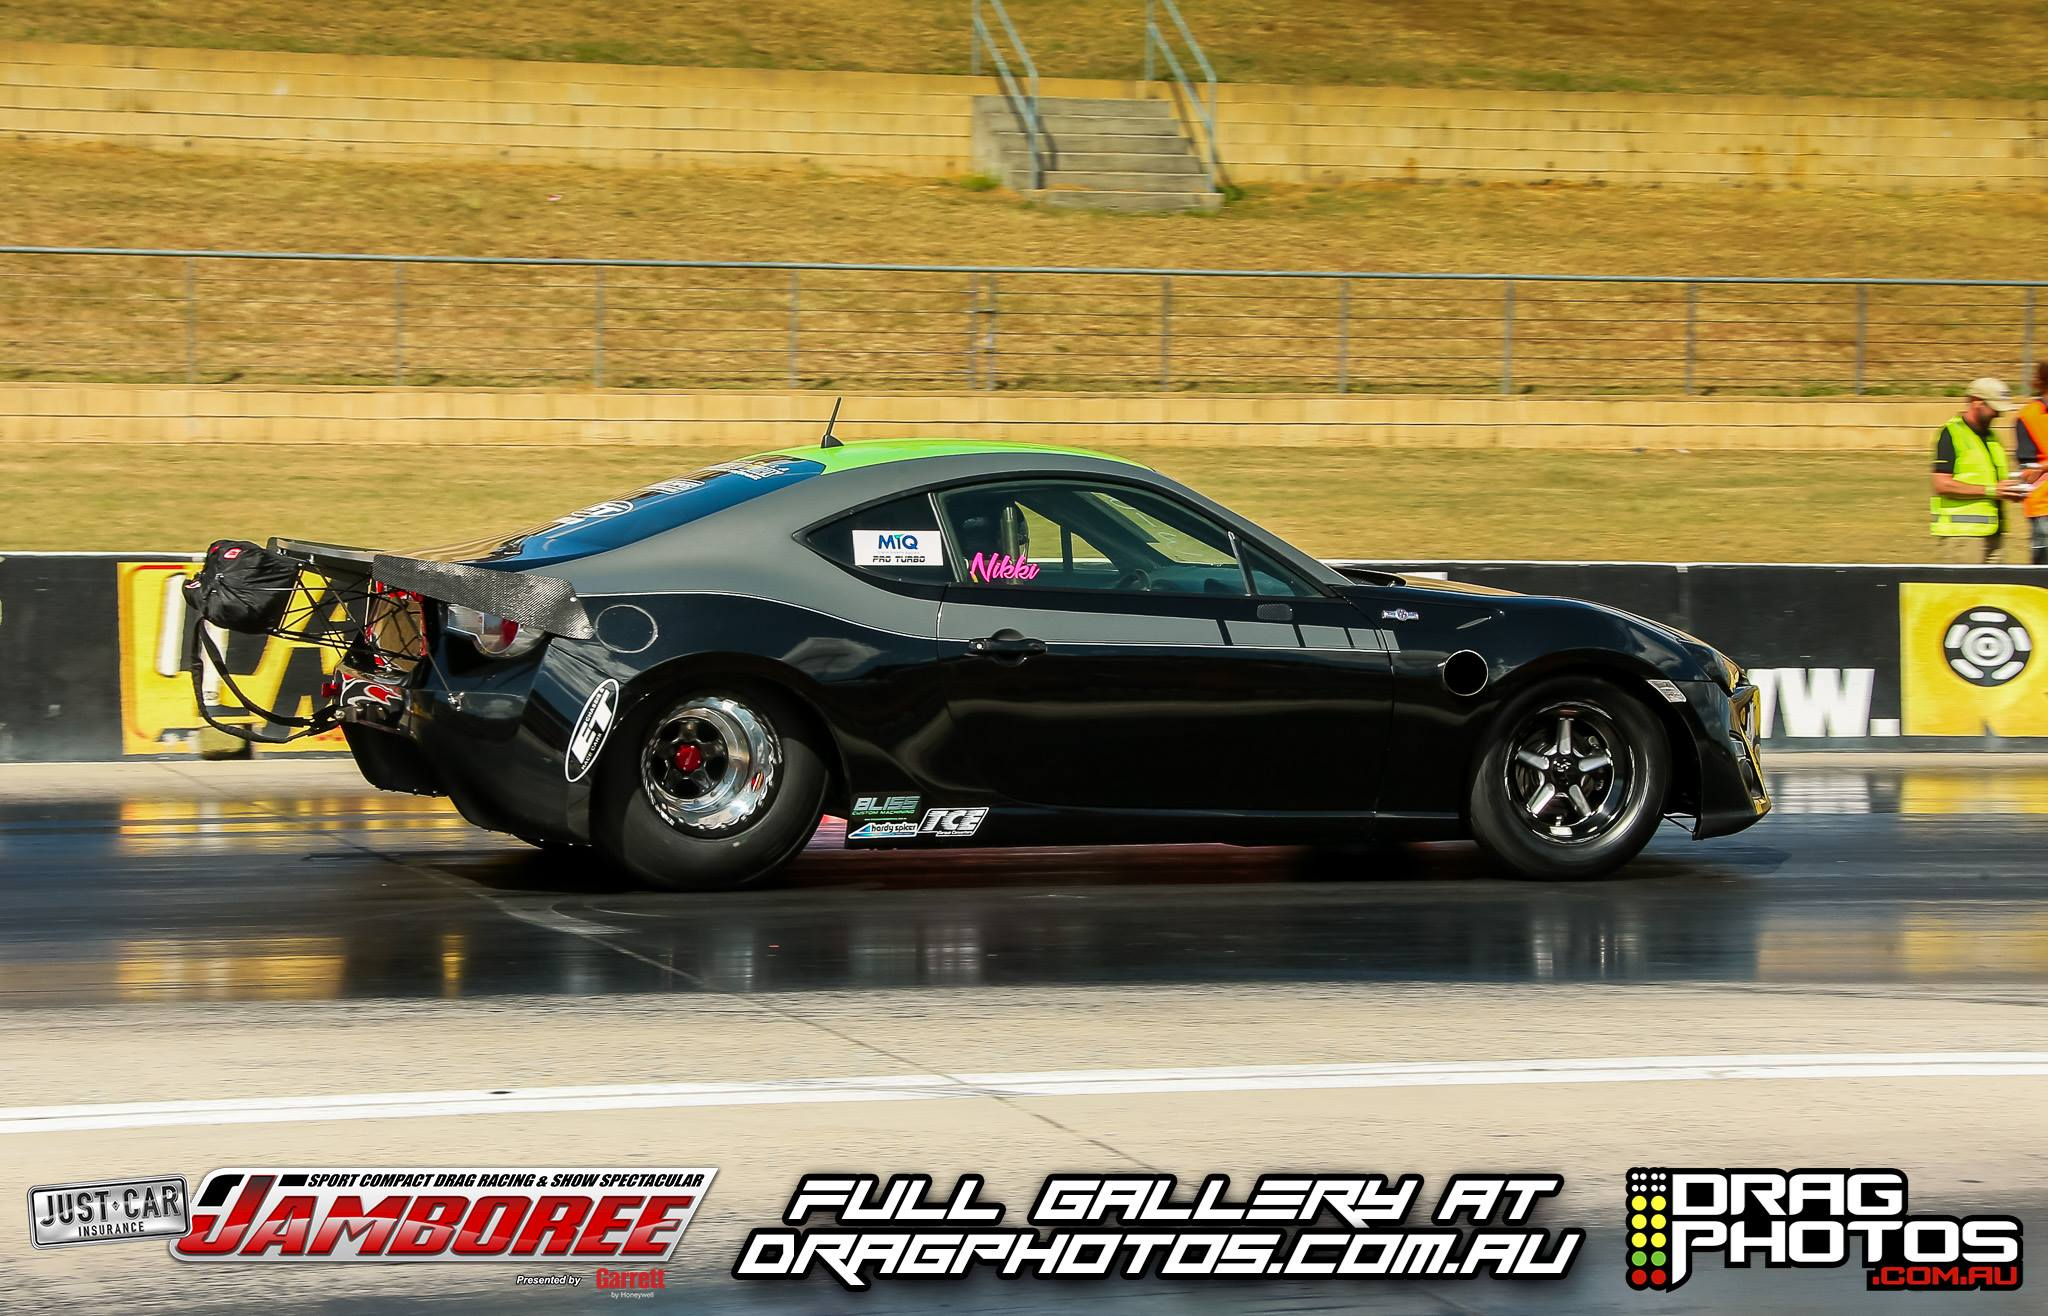 Car: Toyota GT86 Engine: 1FZ Tire: 315. Driver: Nikki Hepburn 1/4 Best ET:  6.725 @ 203.71 MPH Track U0026 Date: Sydney Dragway U2013 March 16, 2018. Record:  World ...